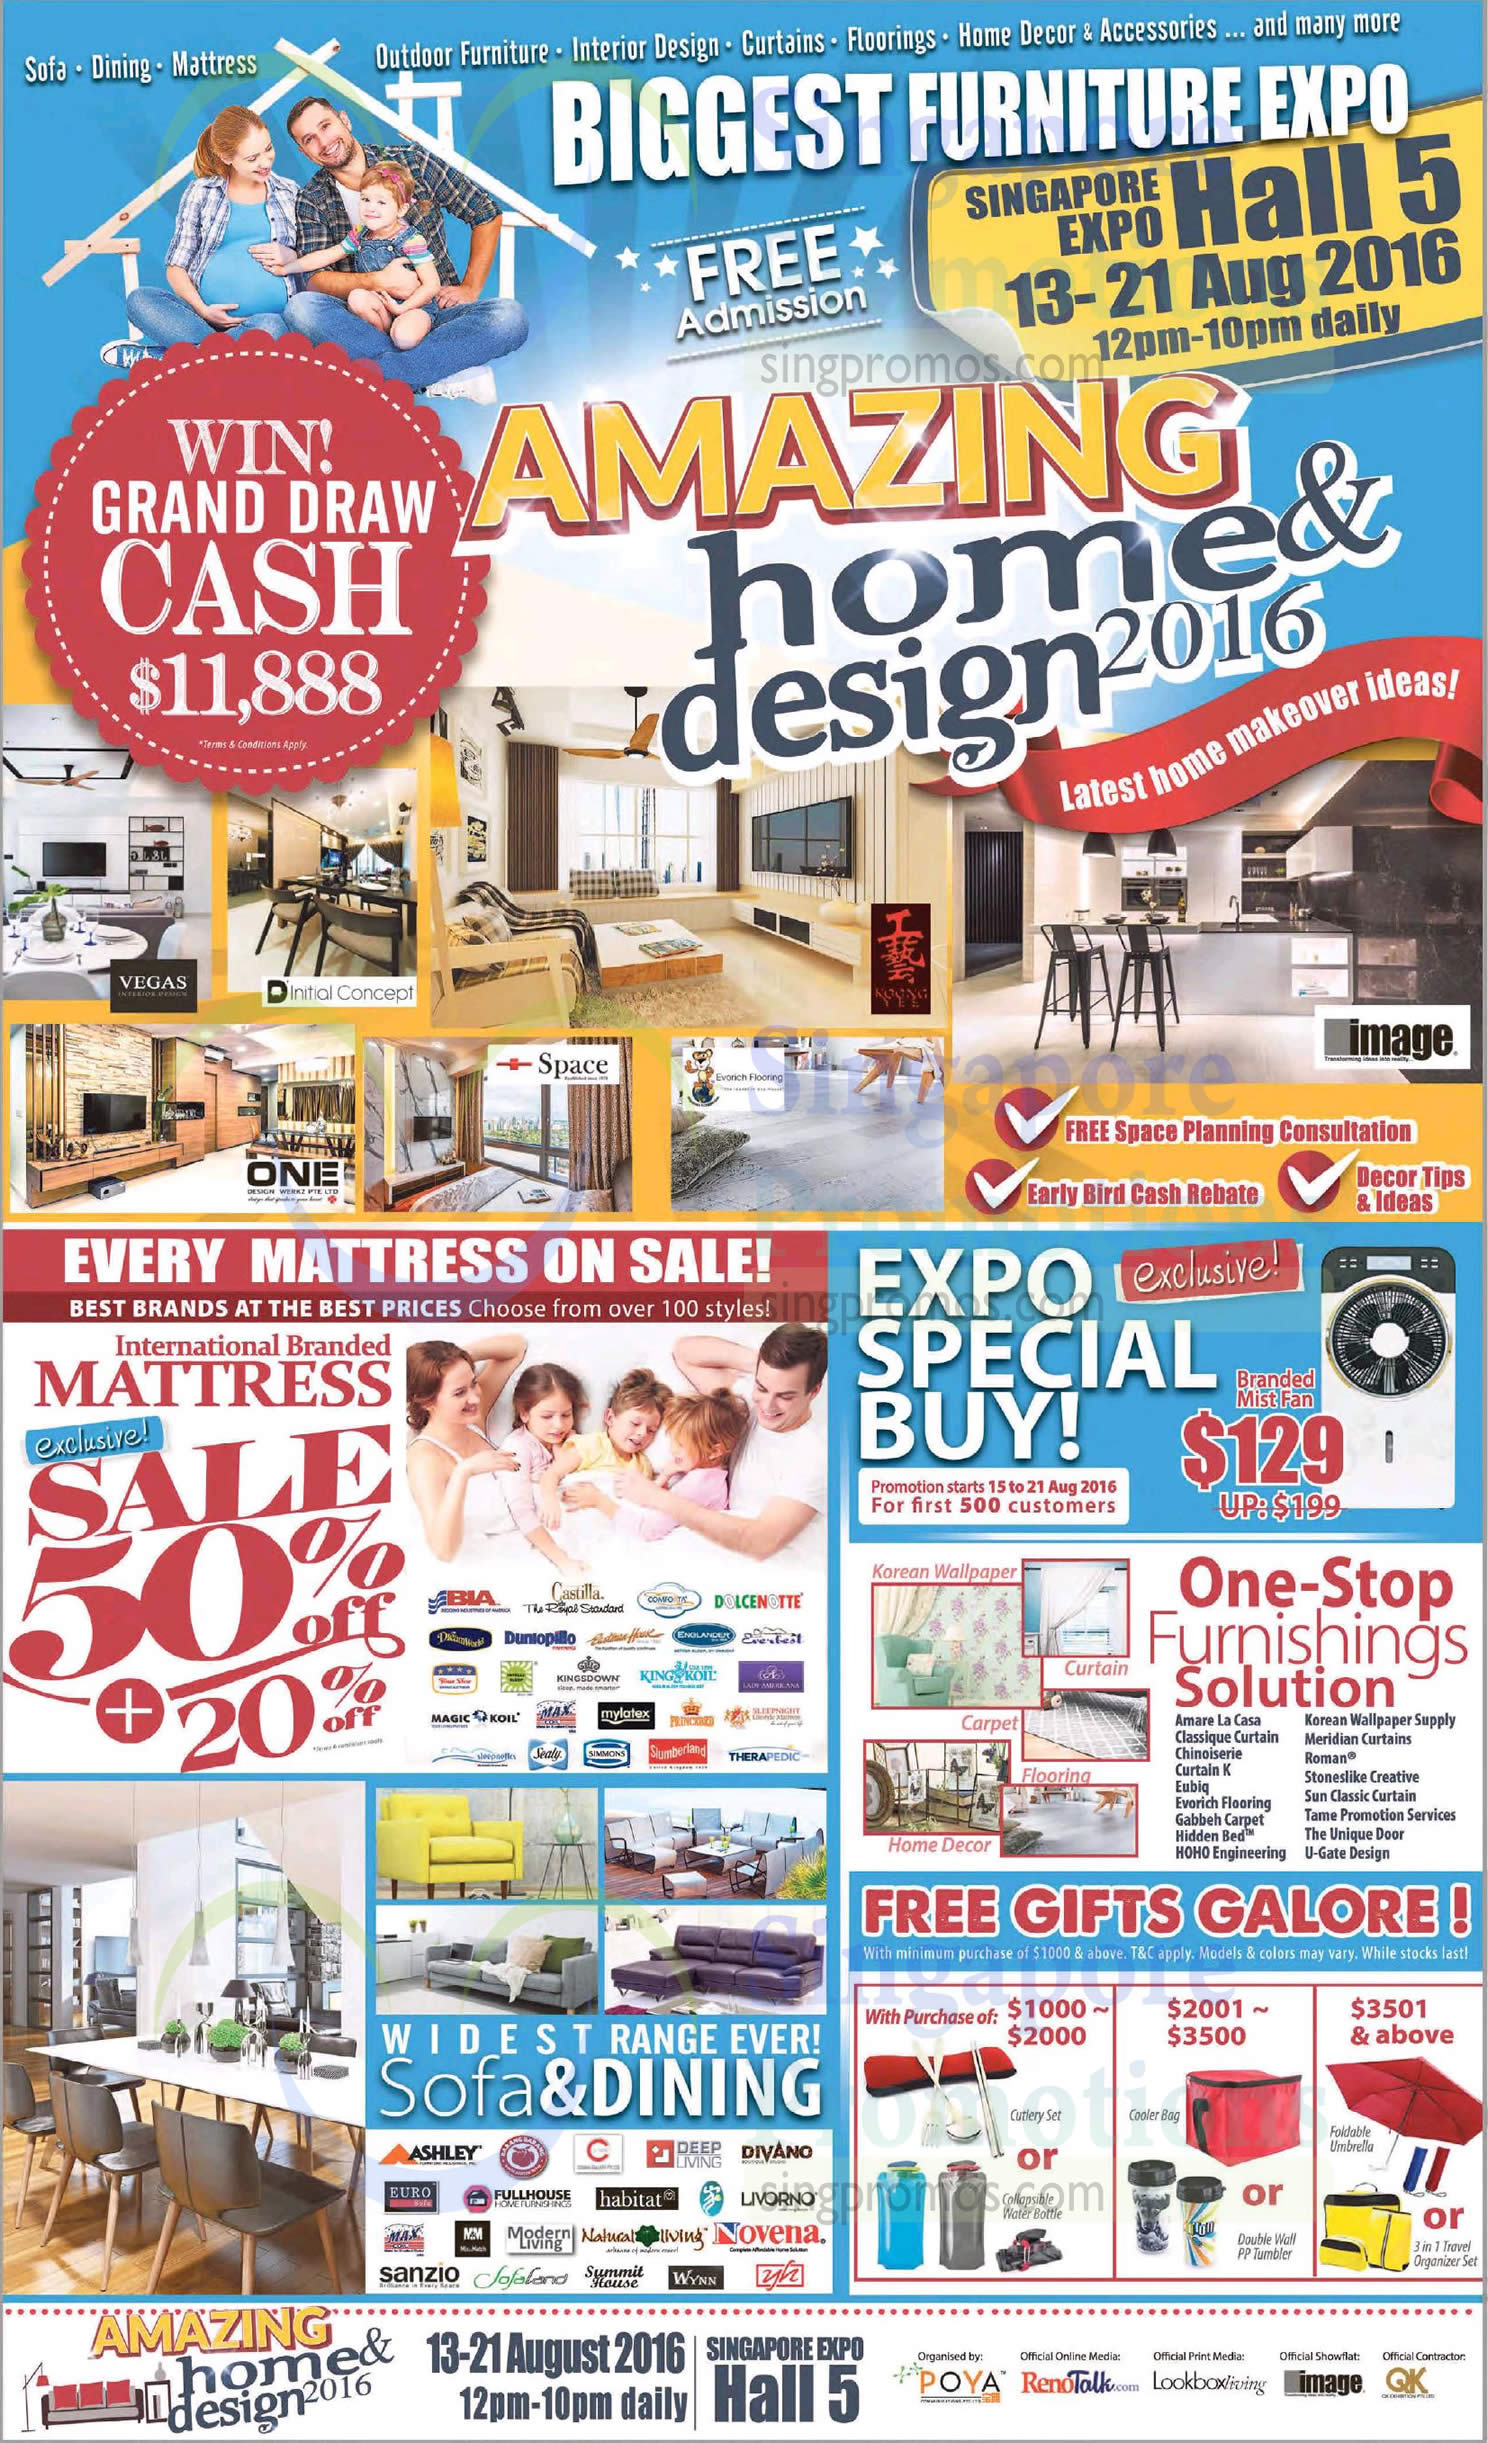 home and decor fair 2016 amazing home amp design 2016 at expo from 13 21 aug 2016 12181